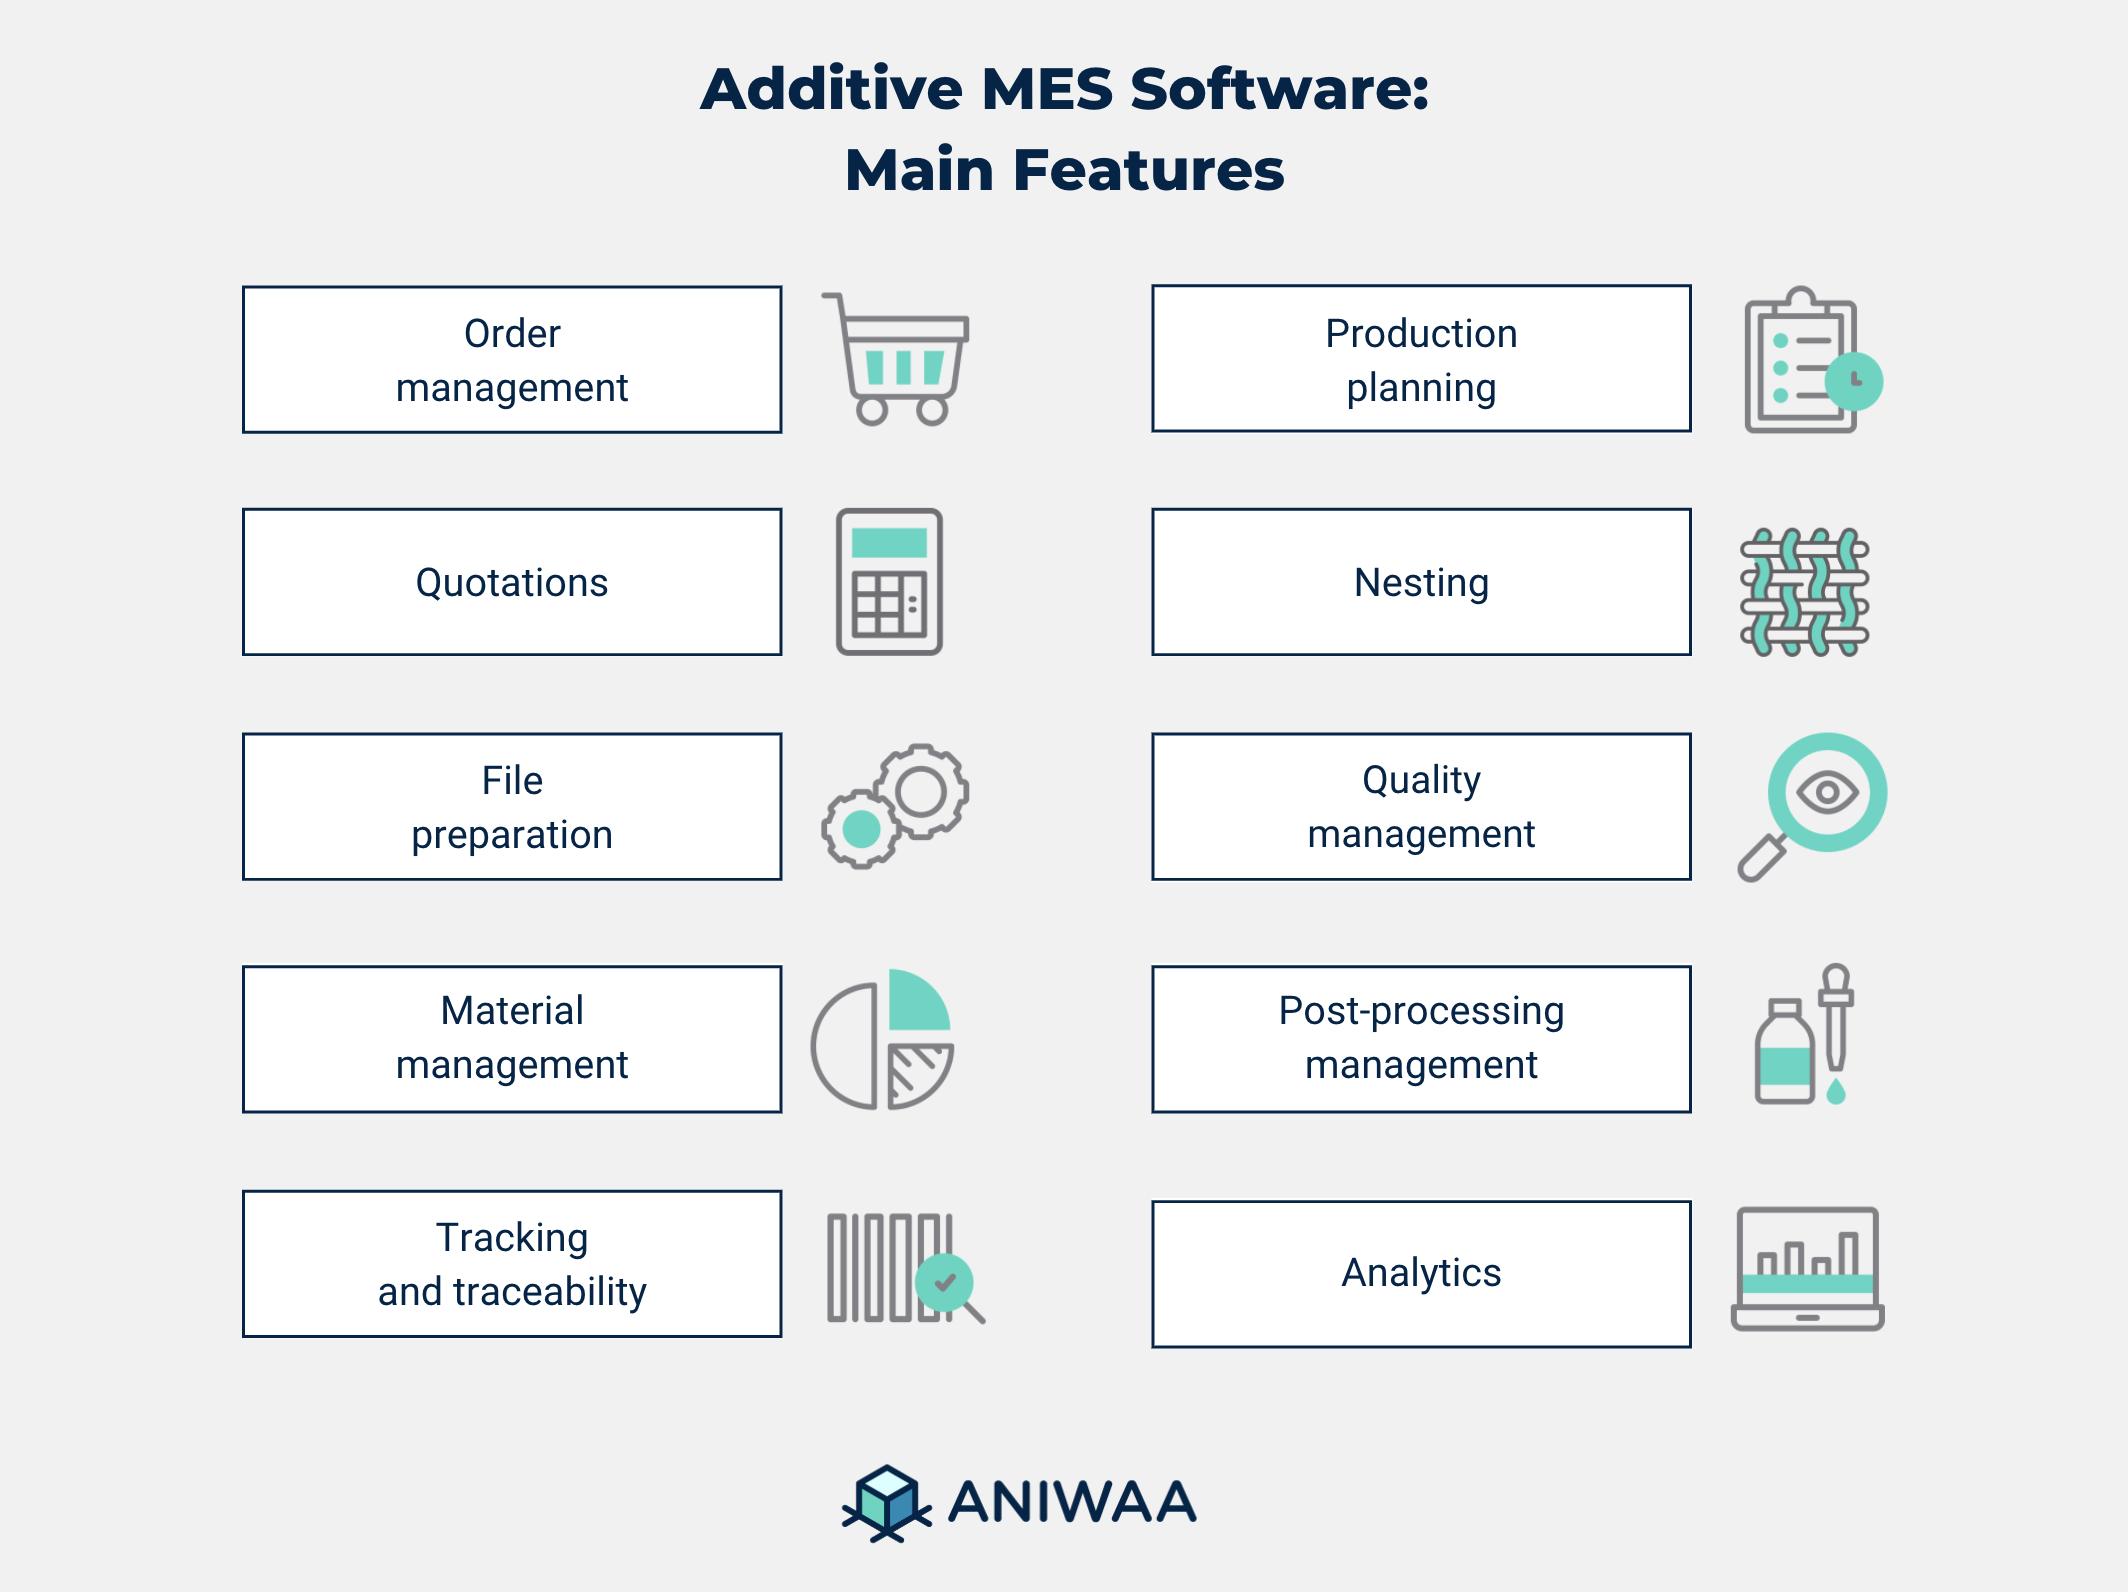 Additive MES main features